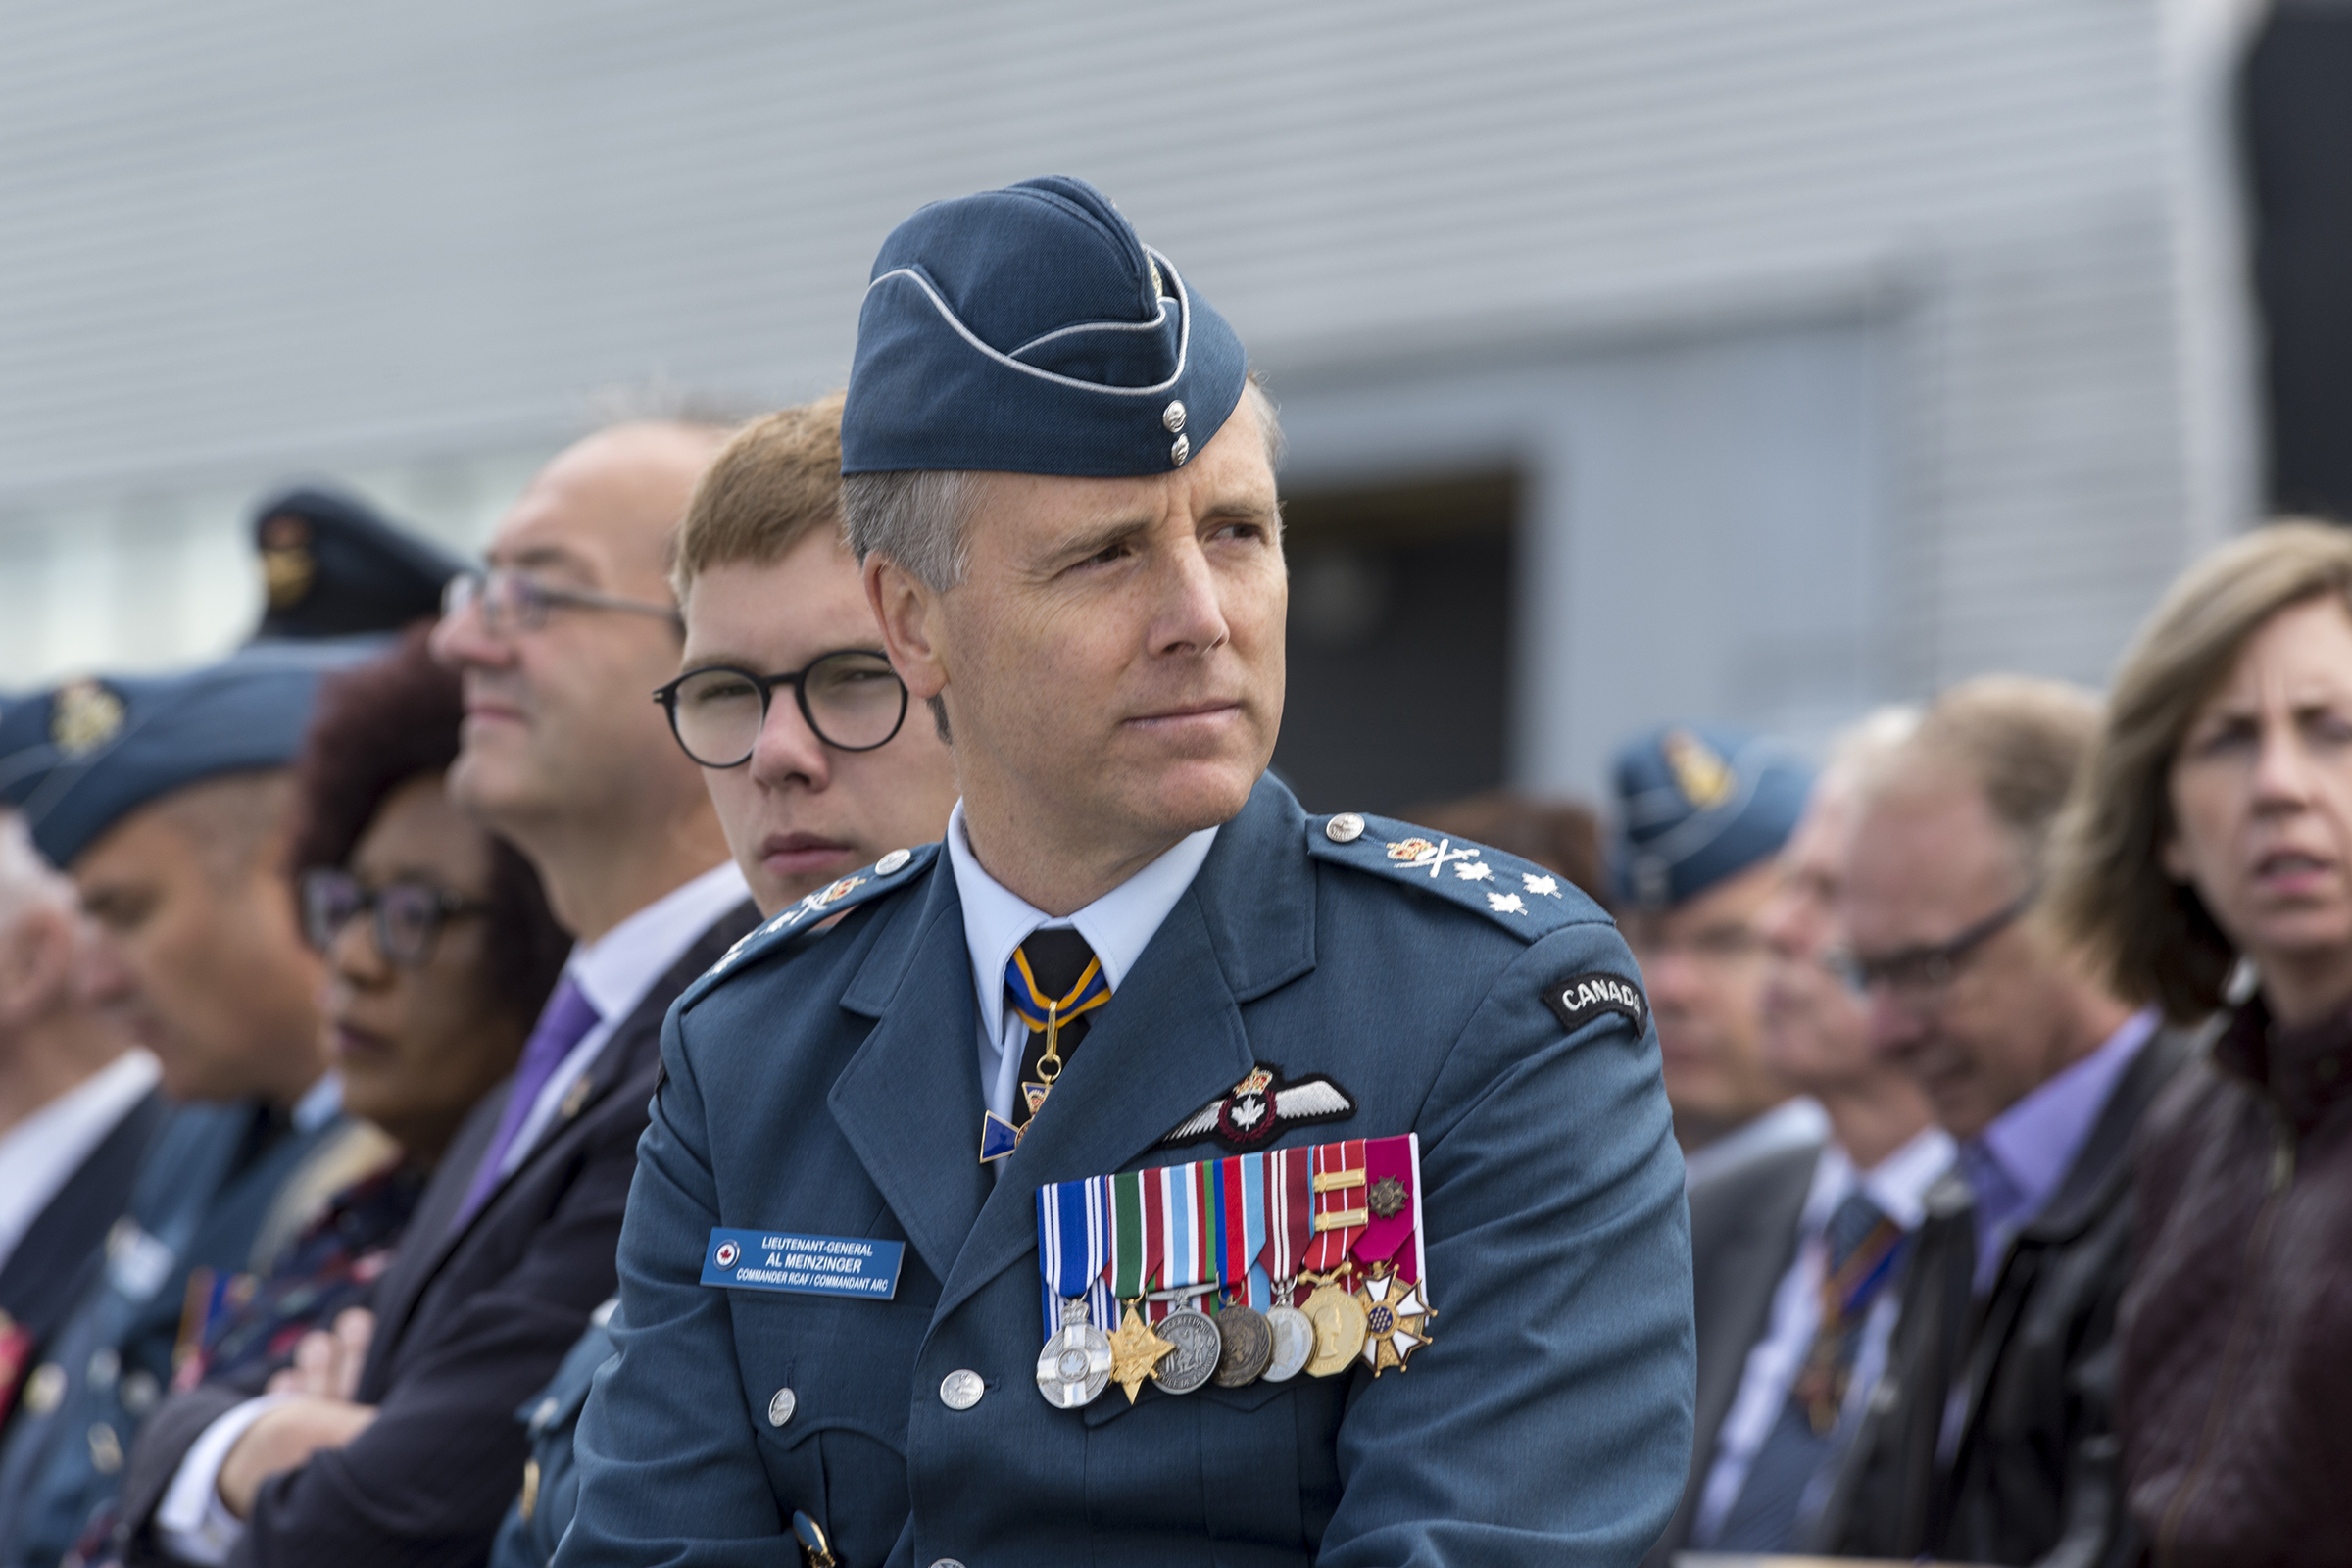 Lieutenant-General Al Meinzinger, commander of the Royal Canadian Air Force, listens intently to remarks delivered by Captain (Navy) Krzysztof Książek, Polish defence attaché, during the 2019 national Battle of Britain commemorative ceremony held September 15, 2019, at the Canada Aviation and Space Museum in Ottawa. PHOTO: Aviator Jacob Hanlon, FA01-2019-0008-031